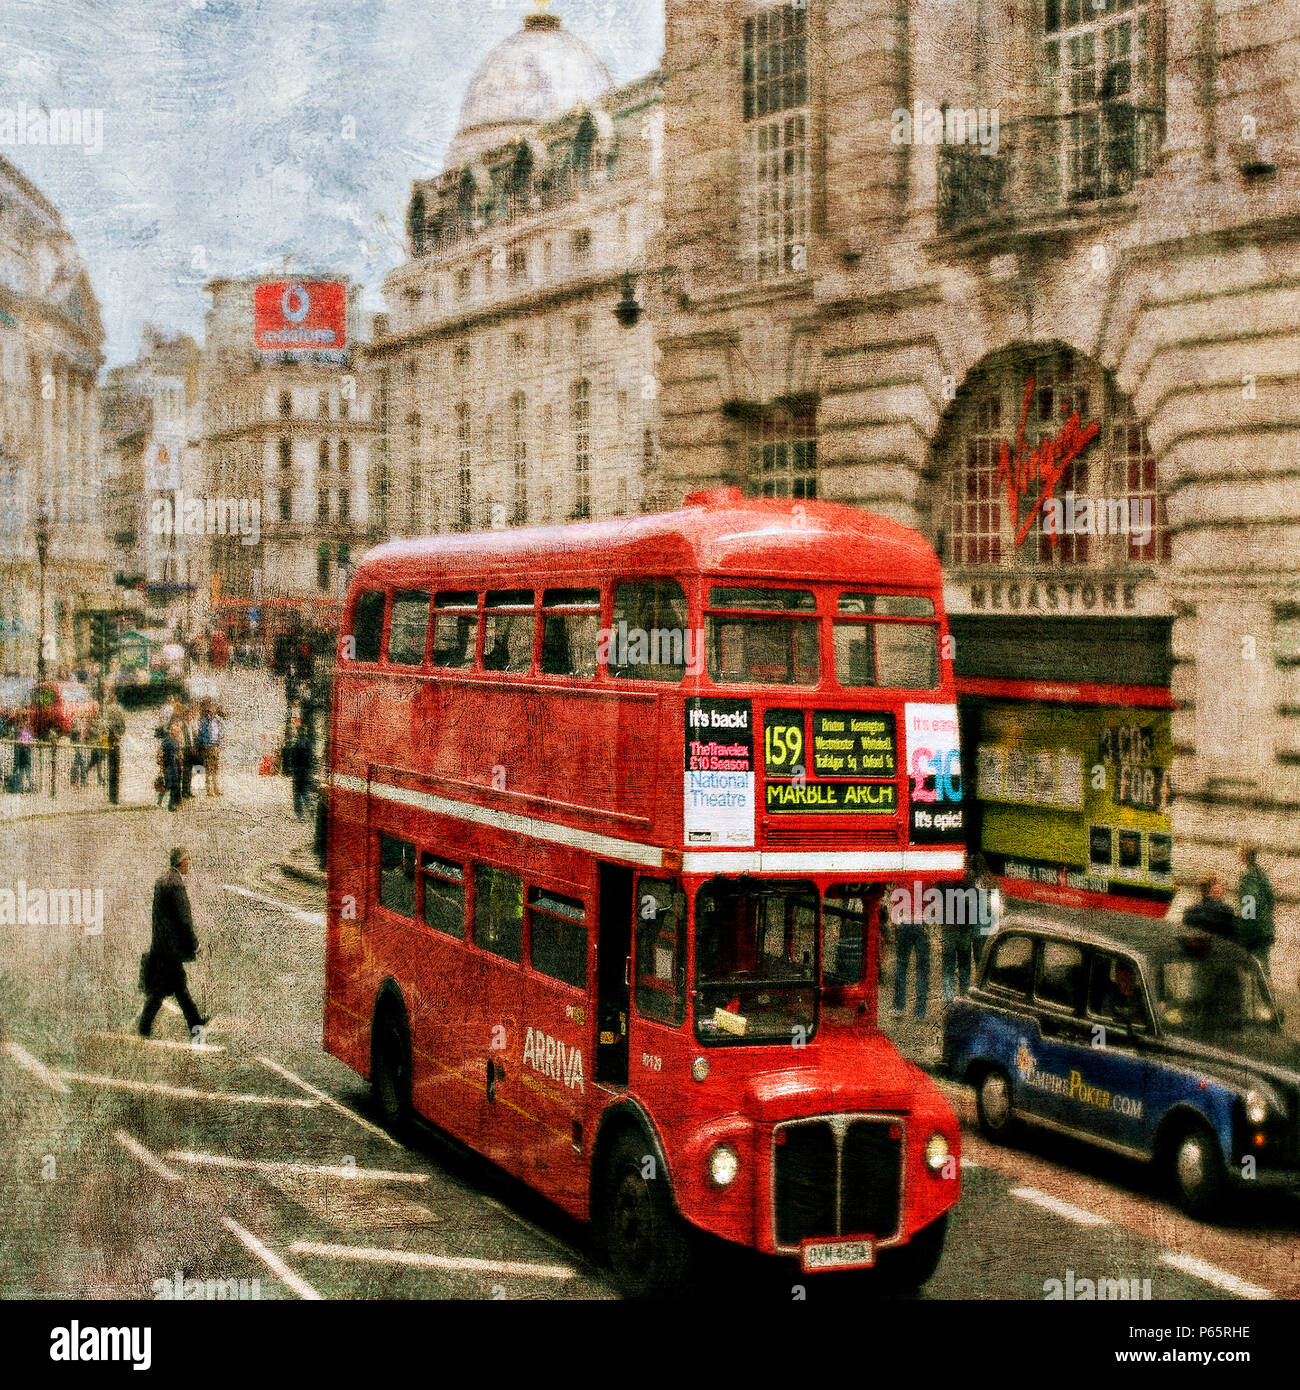 London bus in Piccadilly Circus, London, UK. - Stock Image